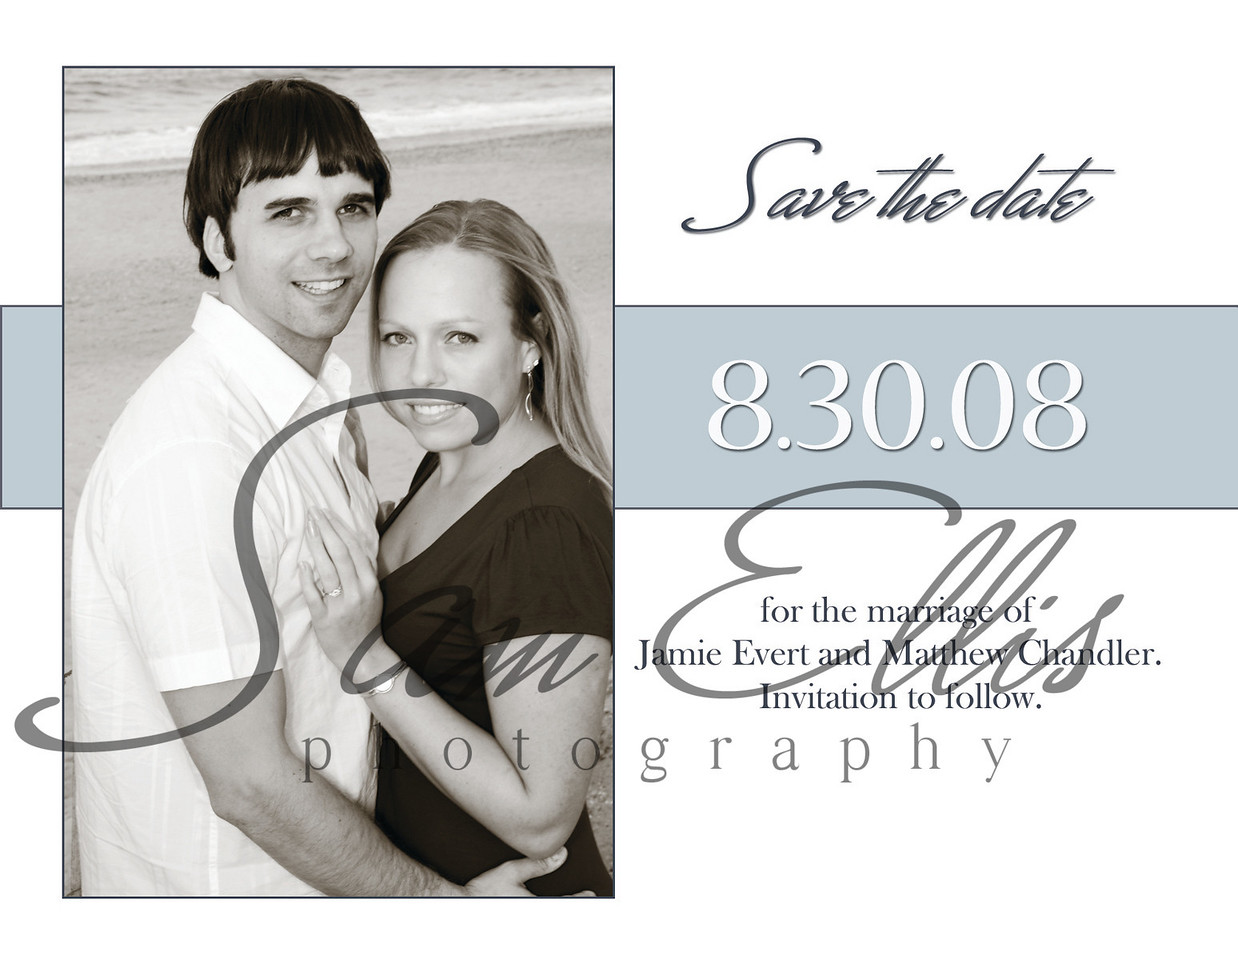 Evert_Chandler Save the Date 5